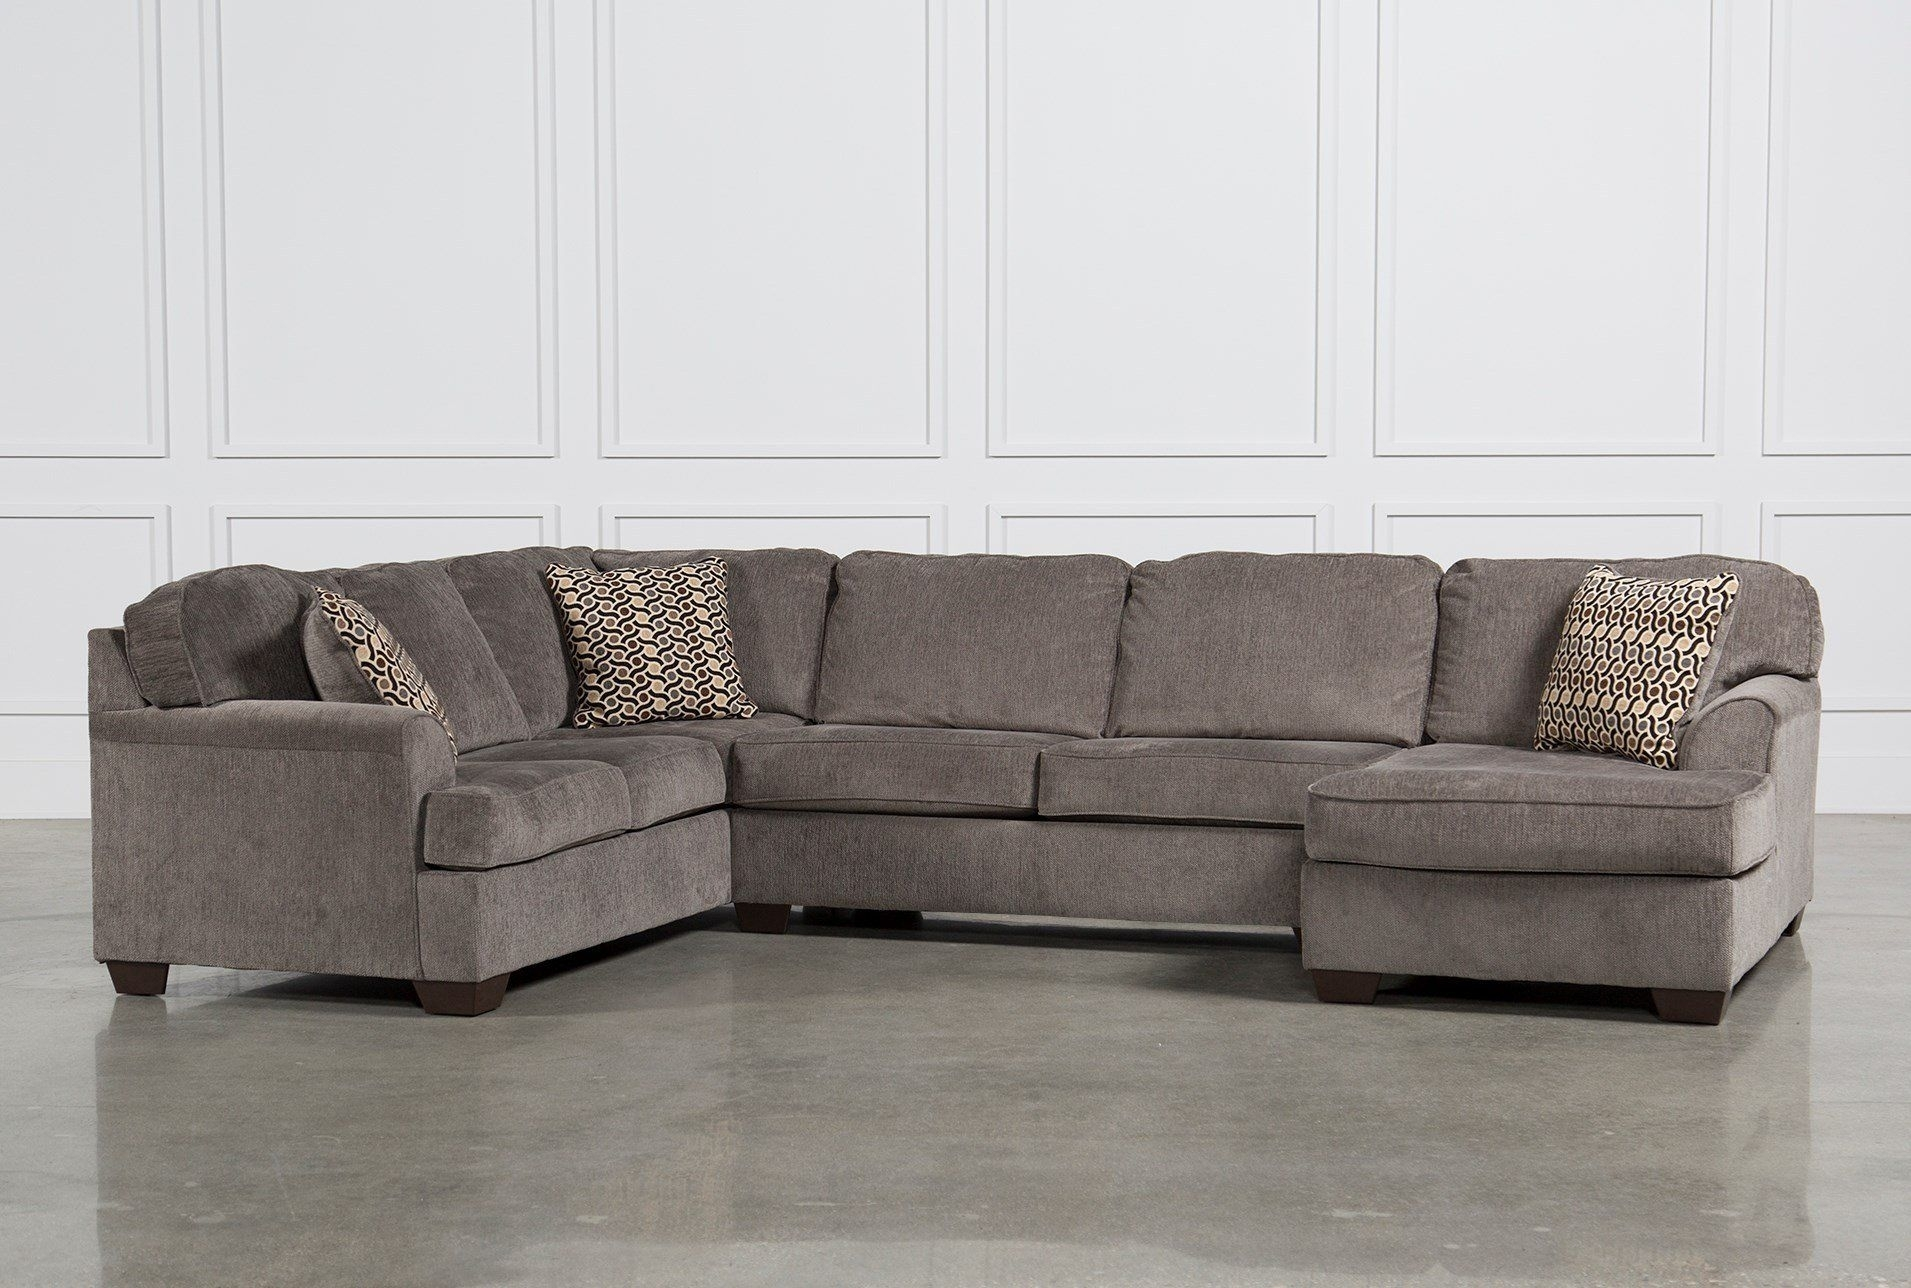 Loric Smoke 3 Piece Sectional W/raf Chaise | Upholstery, Pillows And Regarding Malbry Point 3 Piece Sectionals With Raf Chaise (View 2 of 30)